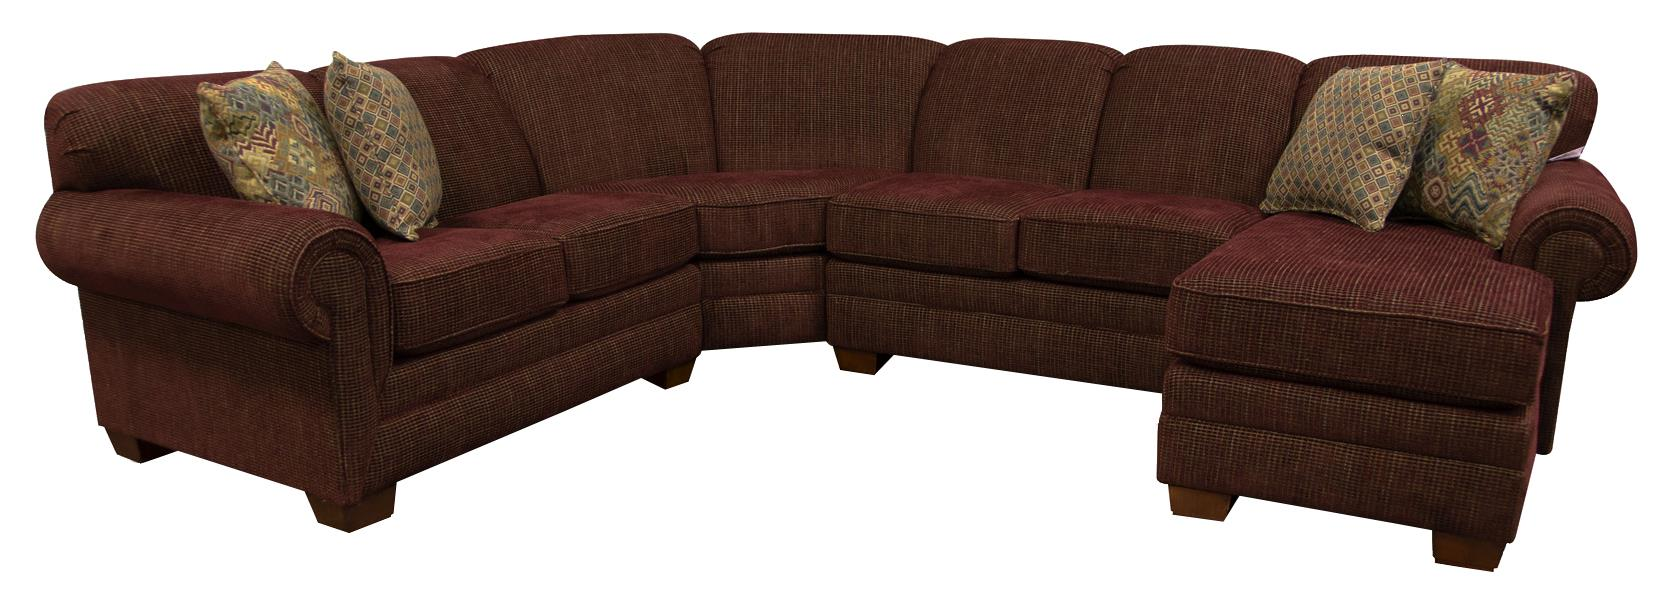 England Monroe Six Seat Sectional Sofa - Item Number: 1430-28+22+43+05-7231